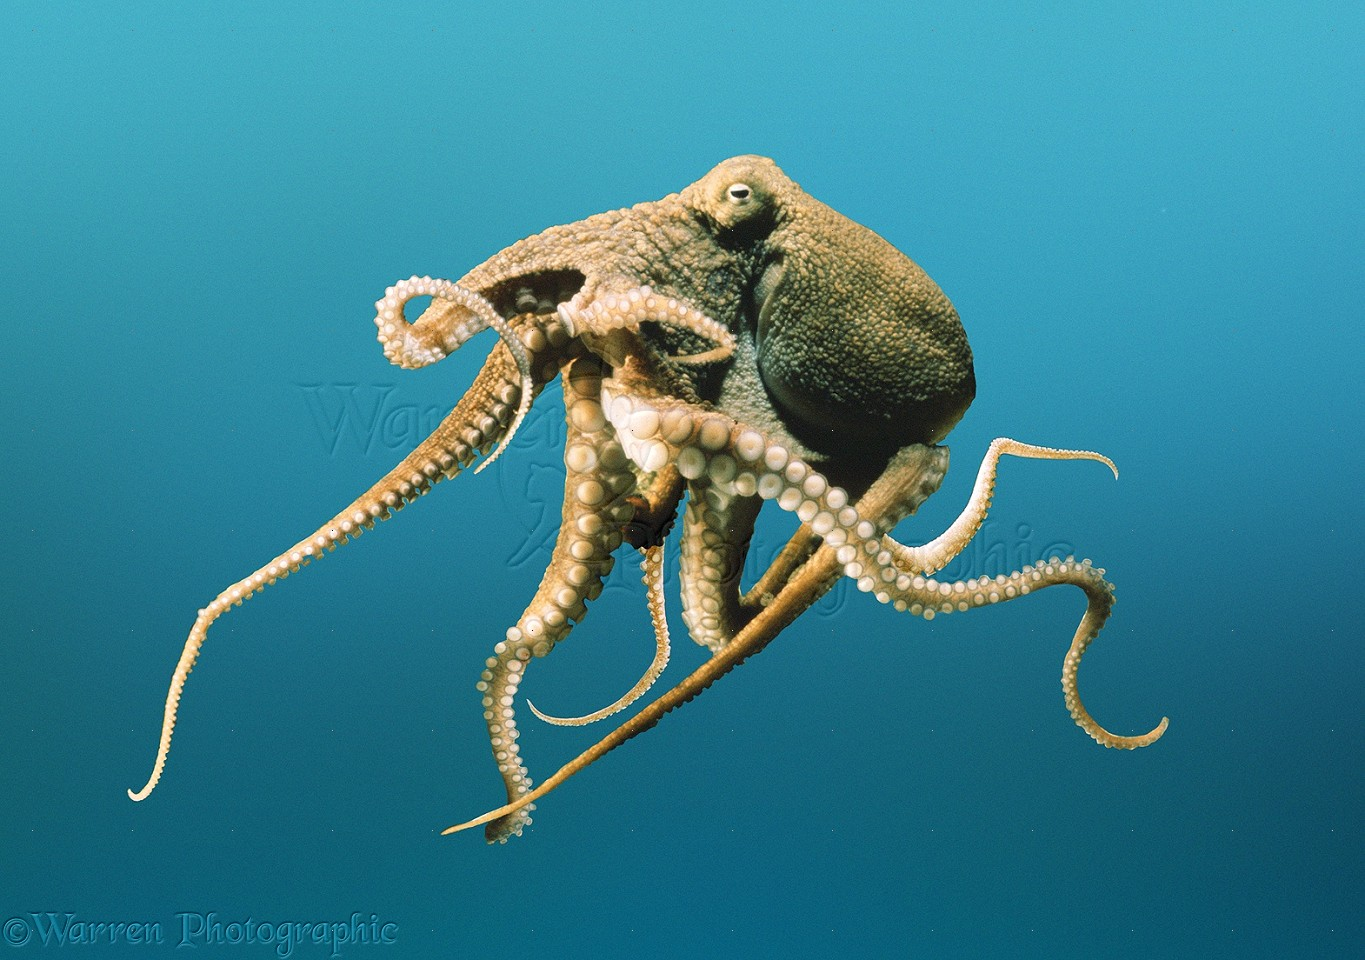 Octopus Pictures Kids Search